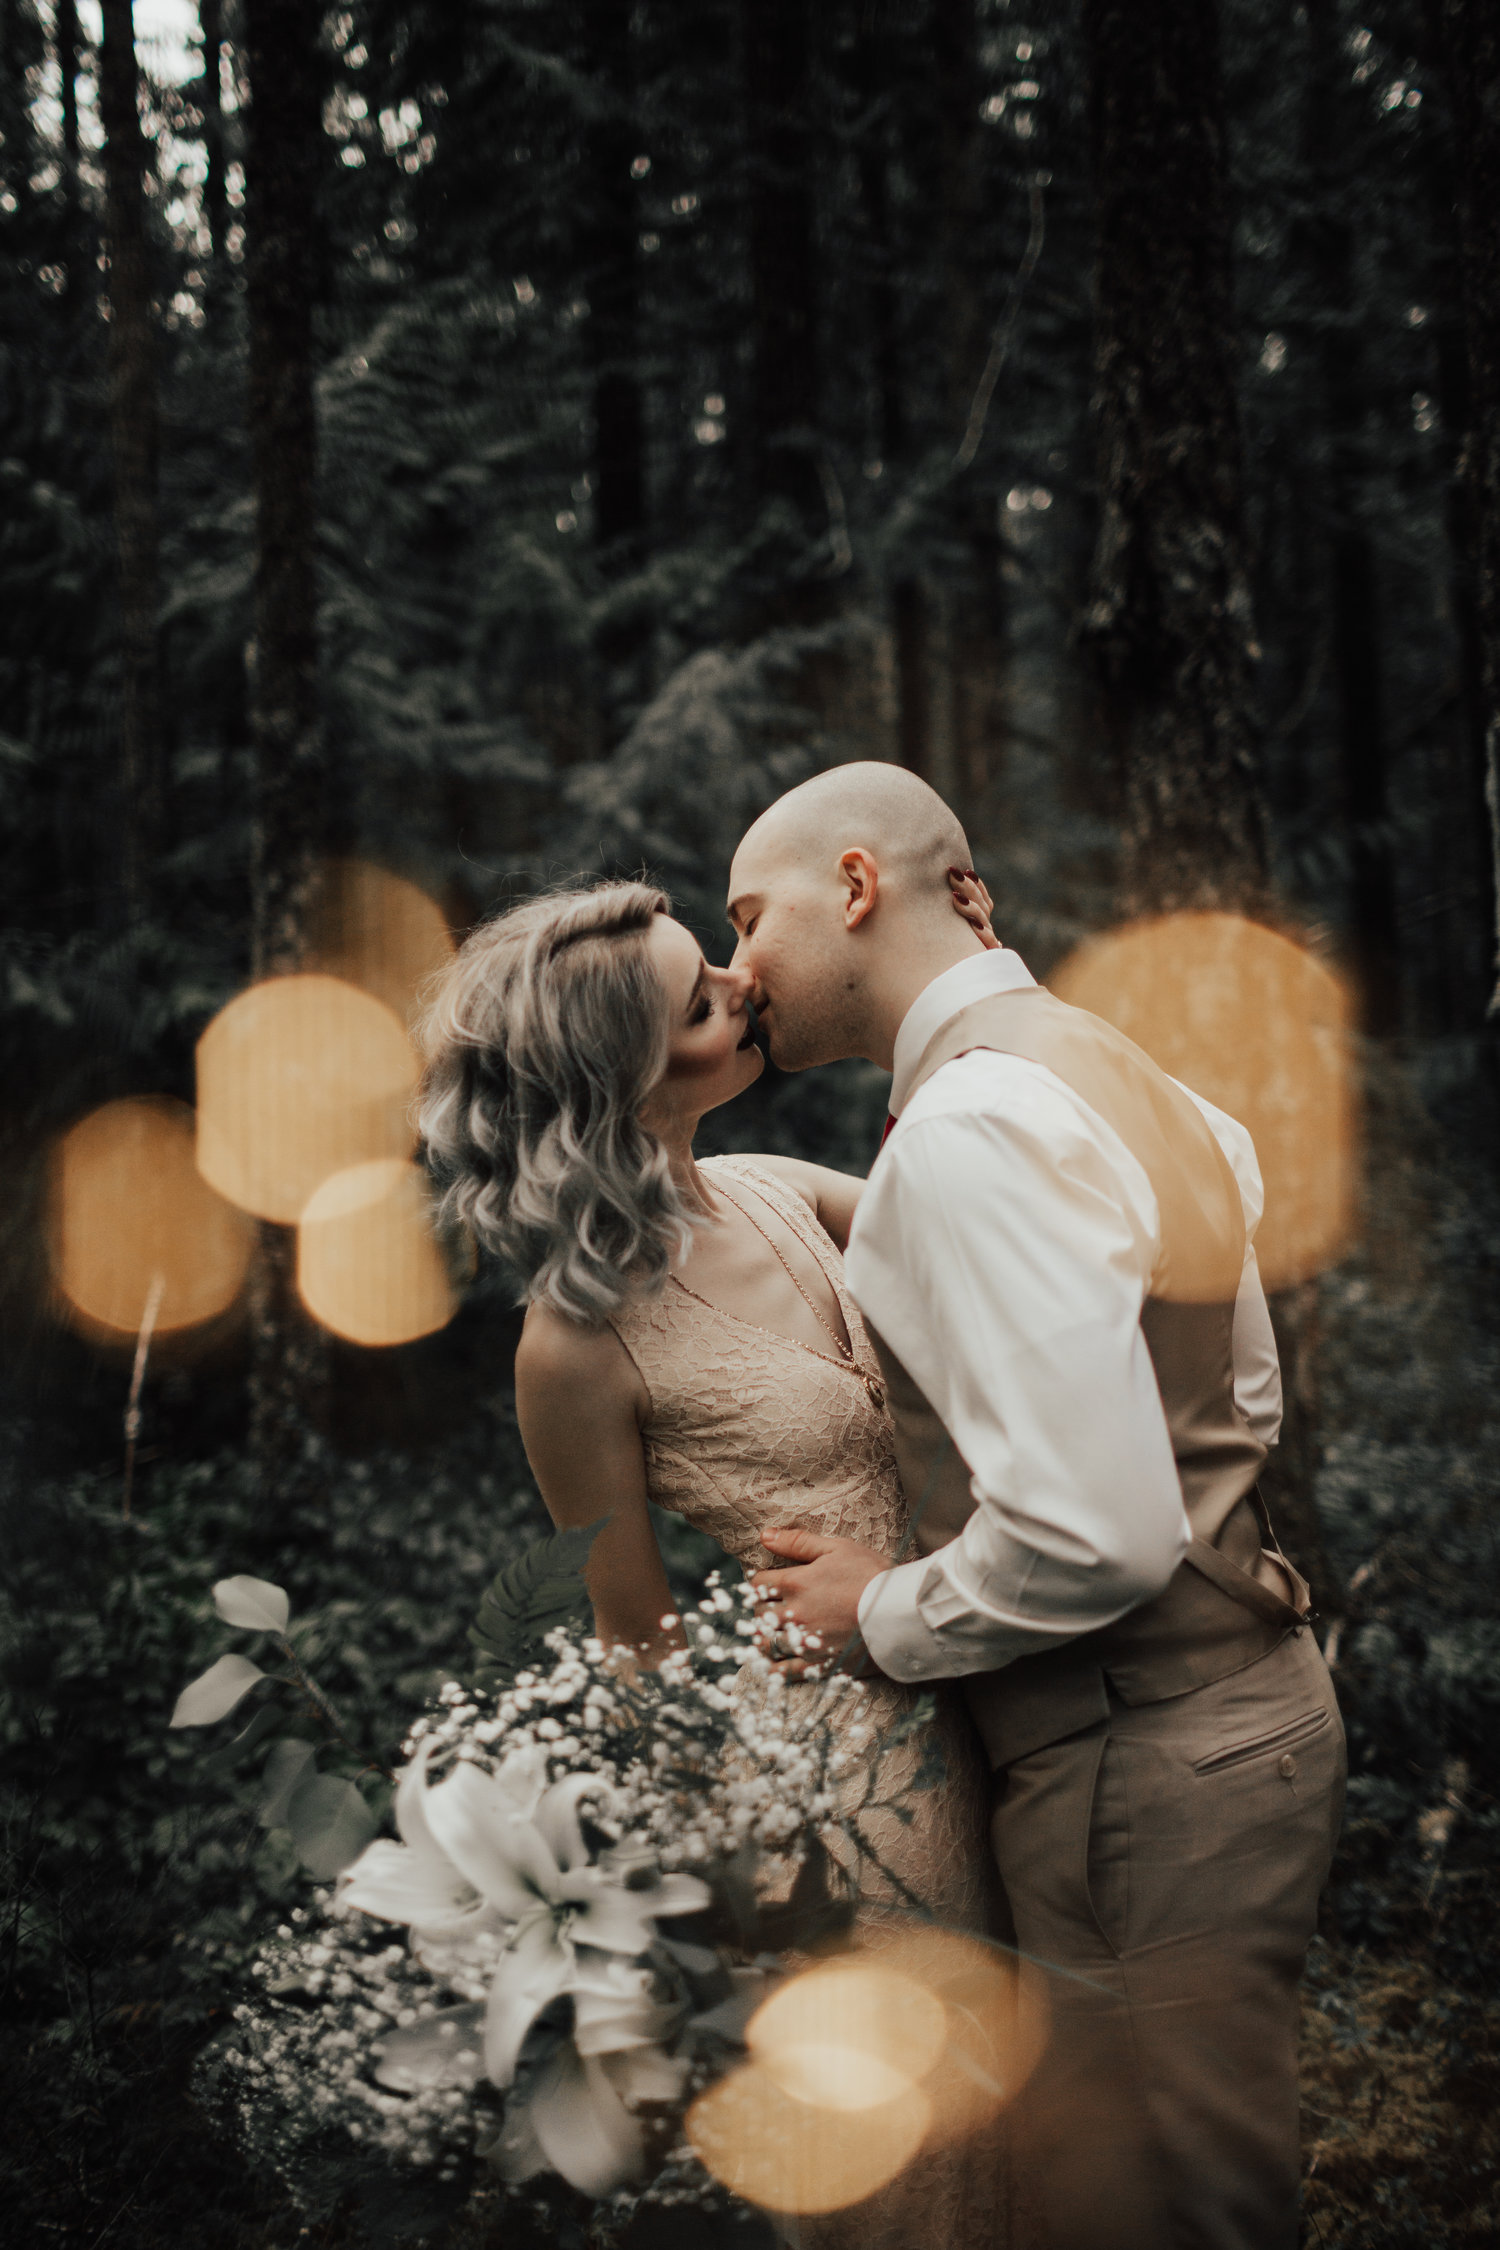 Port+Angeles-PNW-Sequim-Portrait-wedding-elopement-photographer-kayladawnphoto-kayla+dawn+photography-olympic+peninsula-portraiture74.jpg